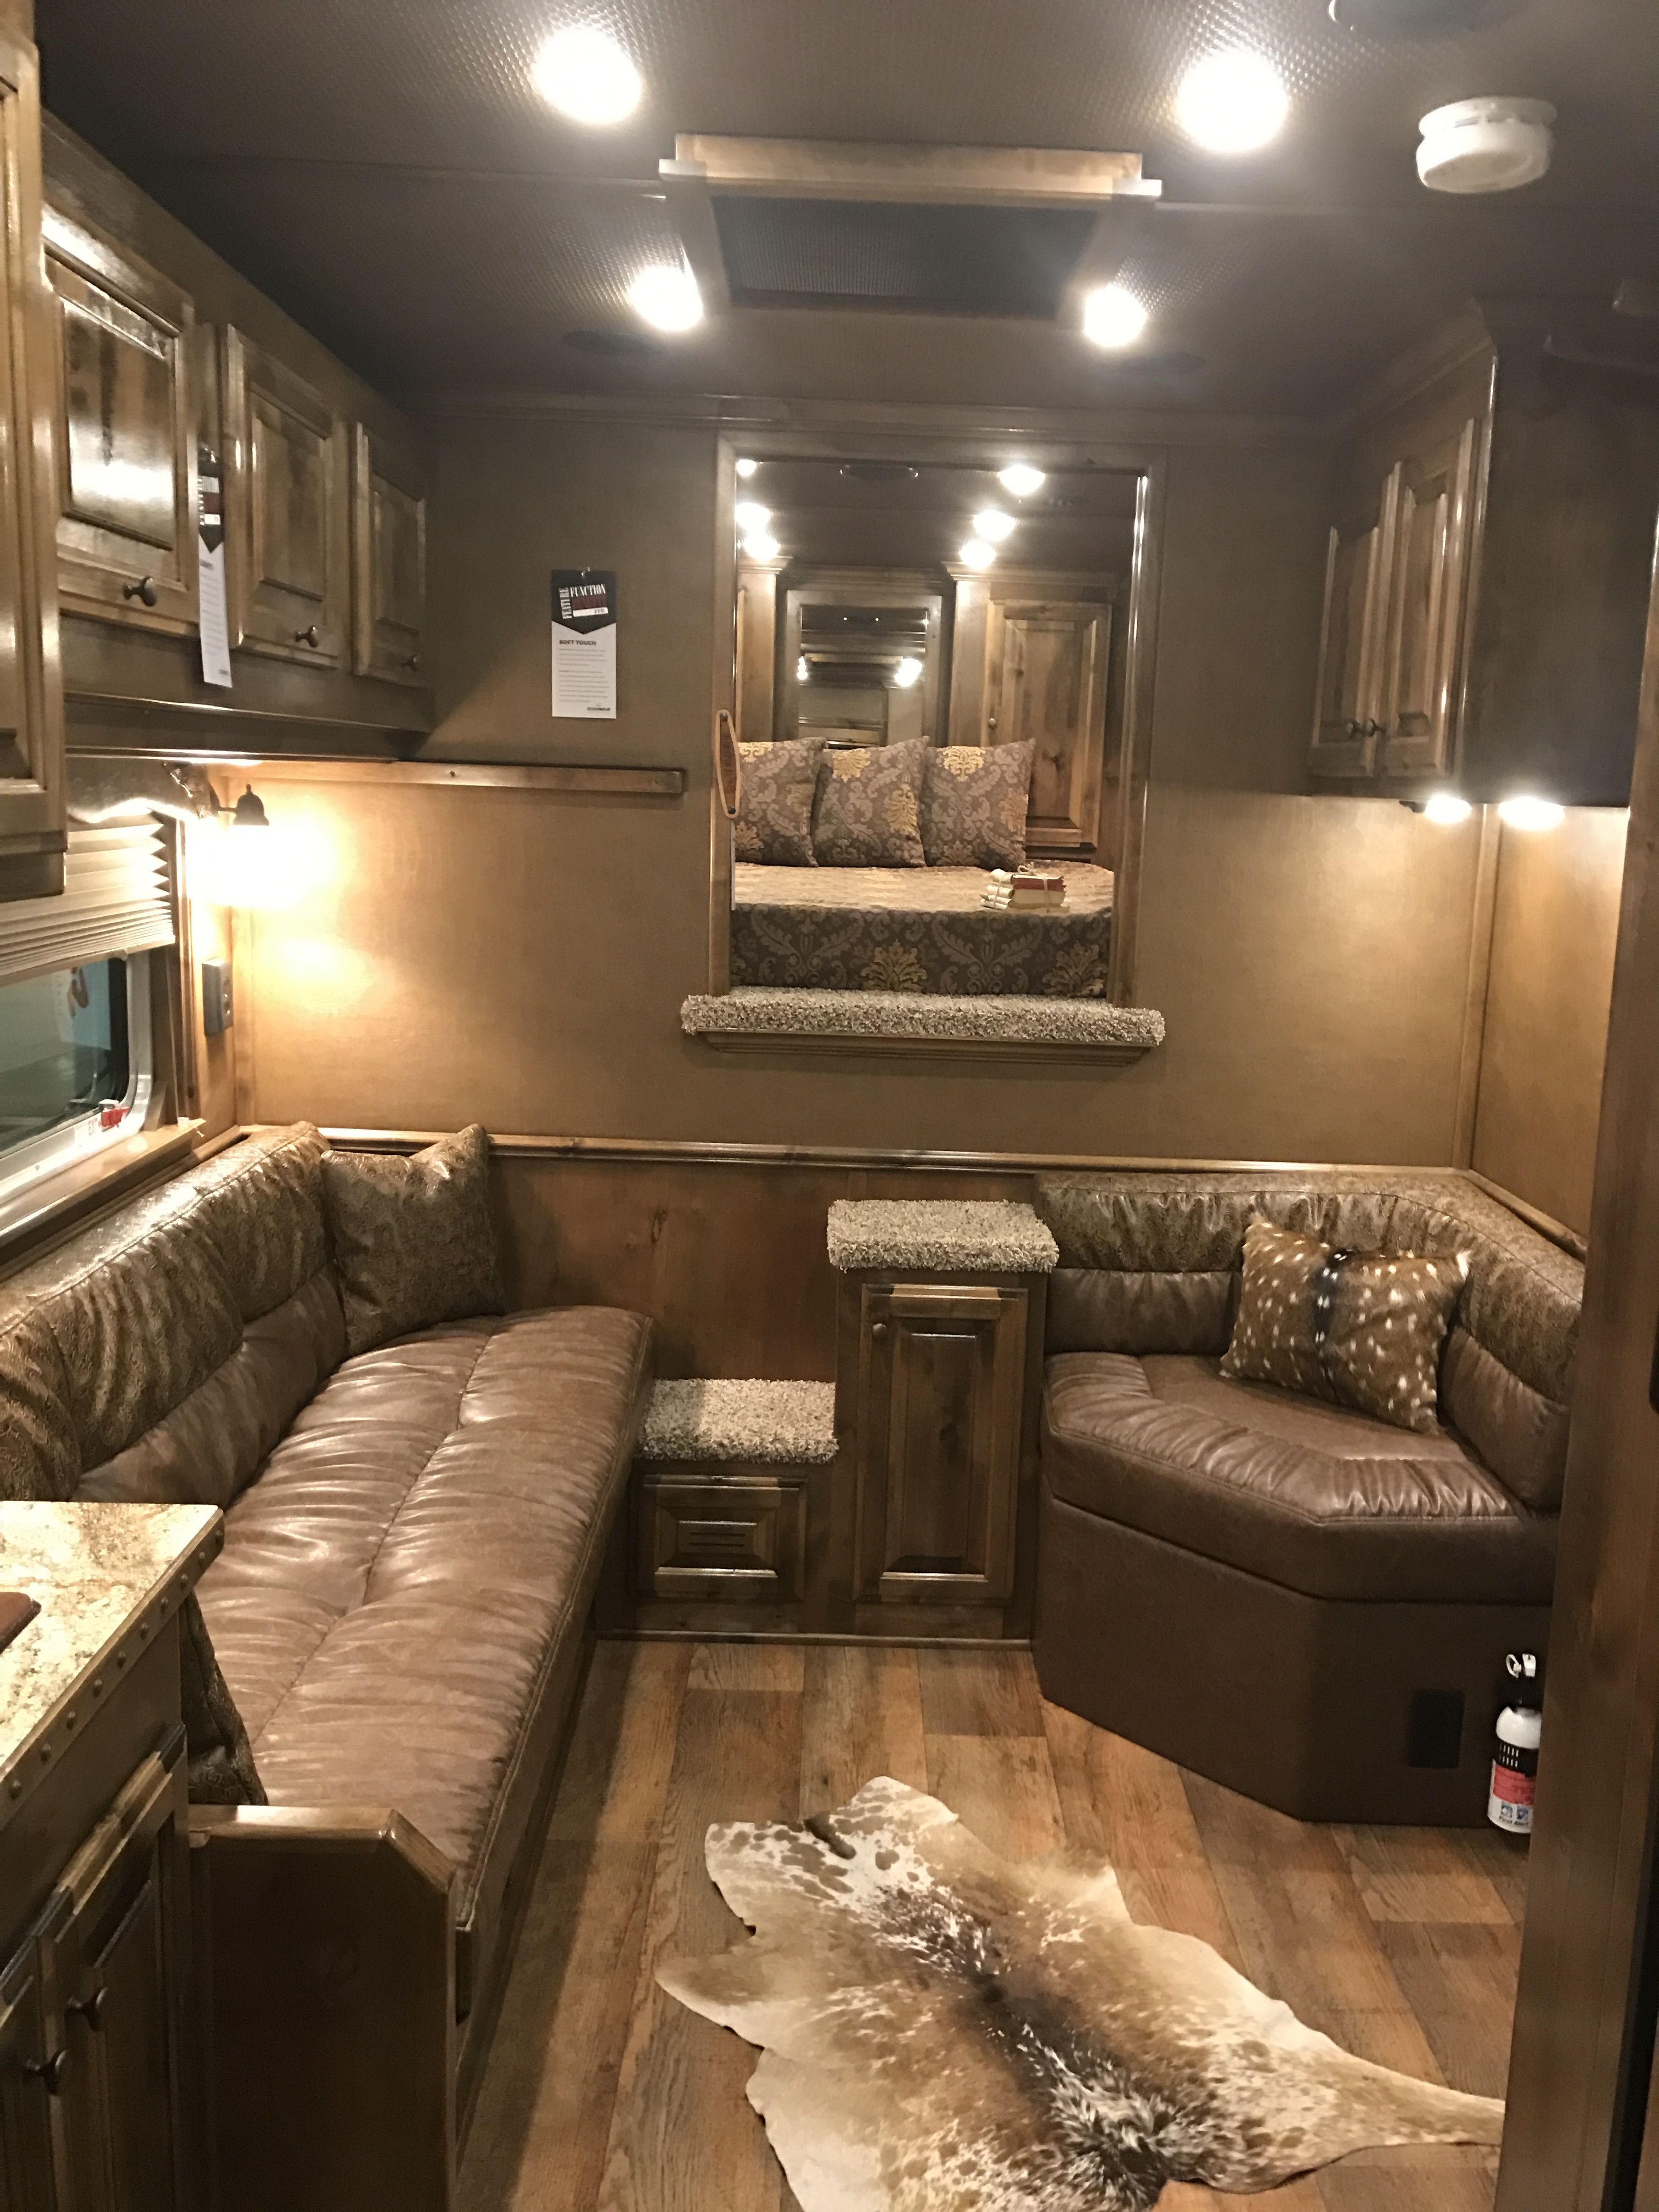 Pin By Quint Willborn On Horse Trailers Horse Trailer Living Quarters Rv Living Room Tiny House Interior Design